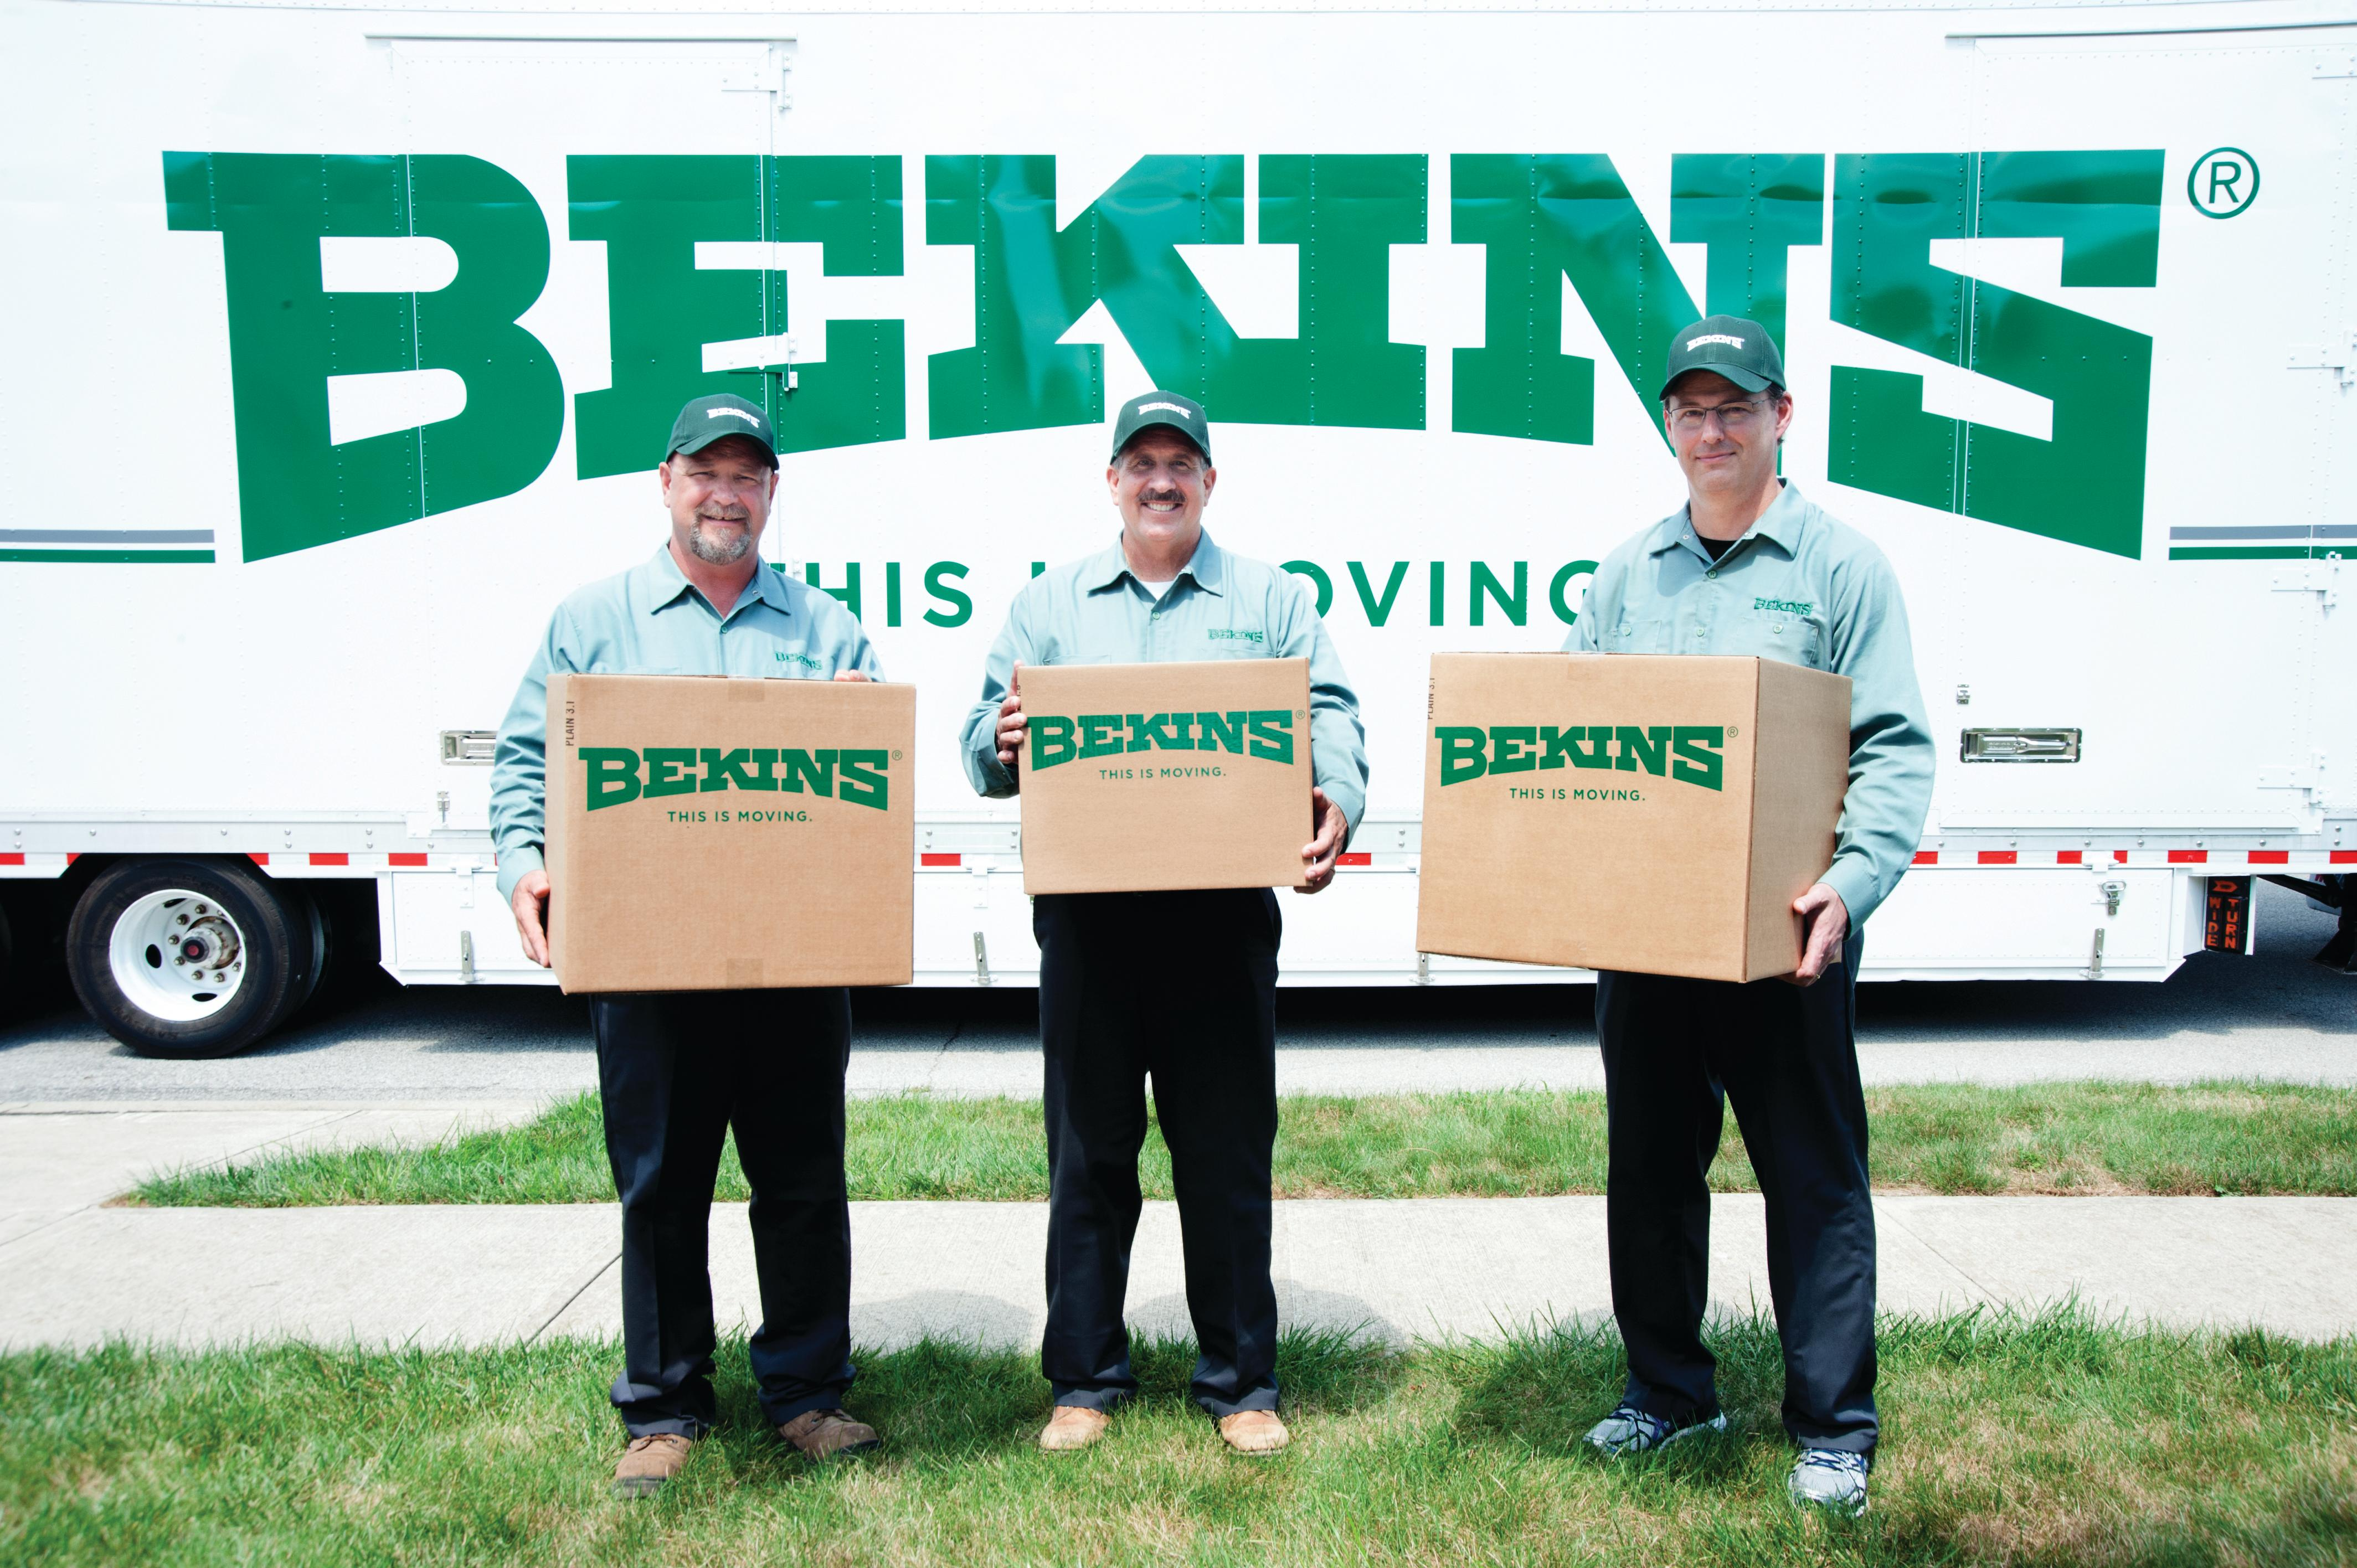 Bekins Moving Solutions image 1